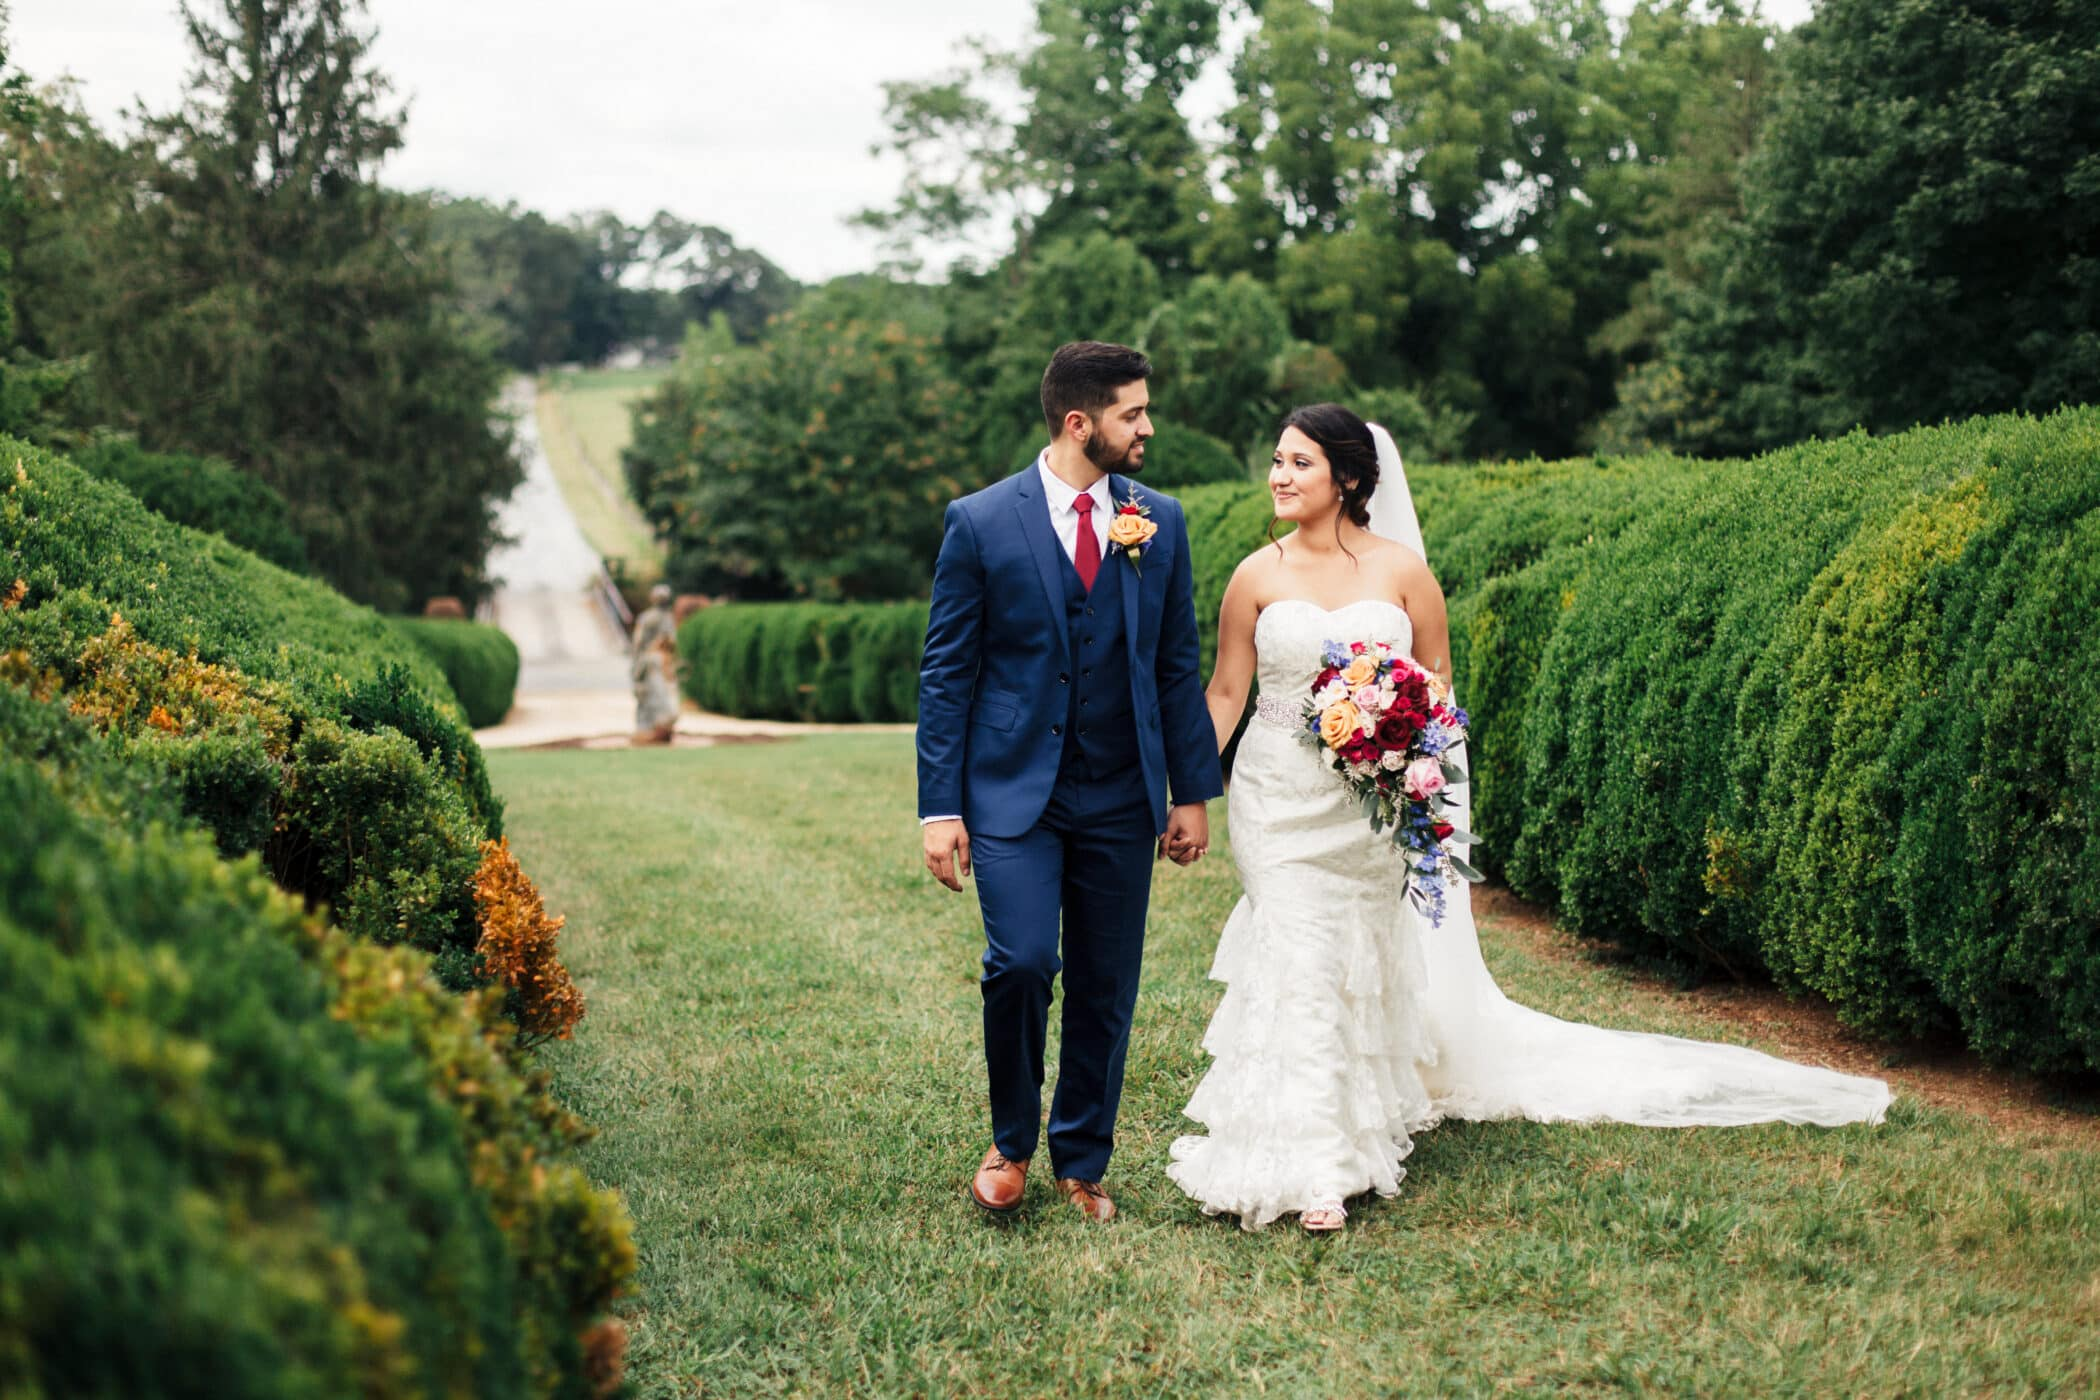 Selecting Your Virginia Wedding Venue | Entwined Events | Venue: West Manor Estate in Forest, VA | Photo Credit: Ellie Richardson Photography